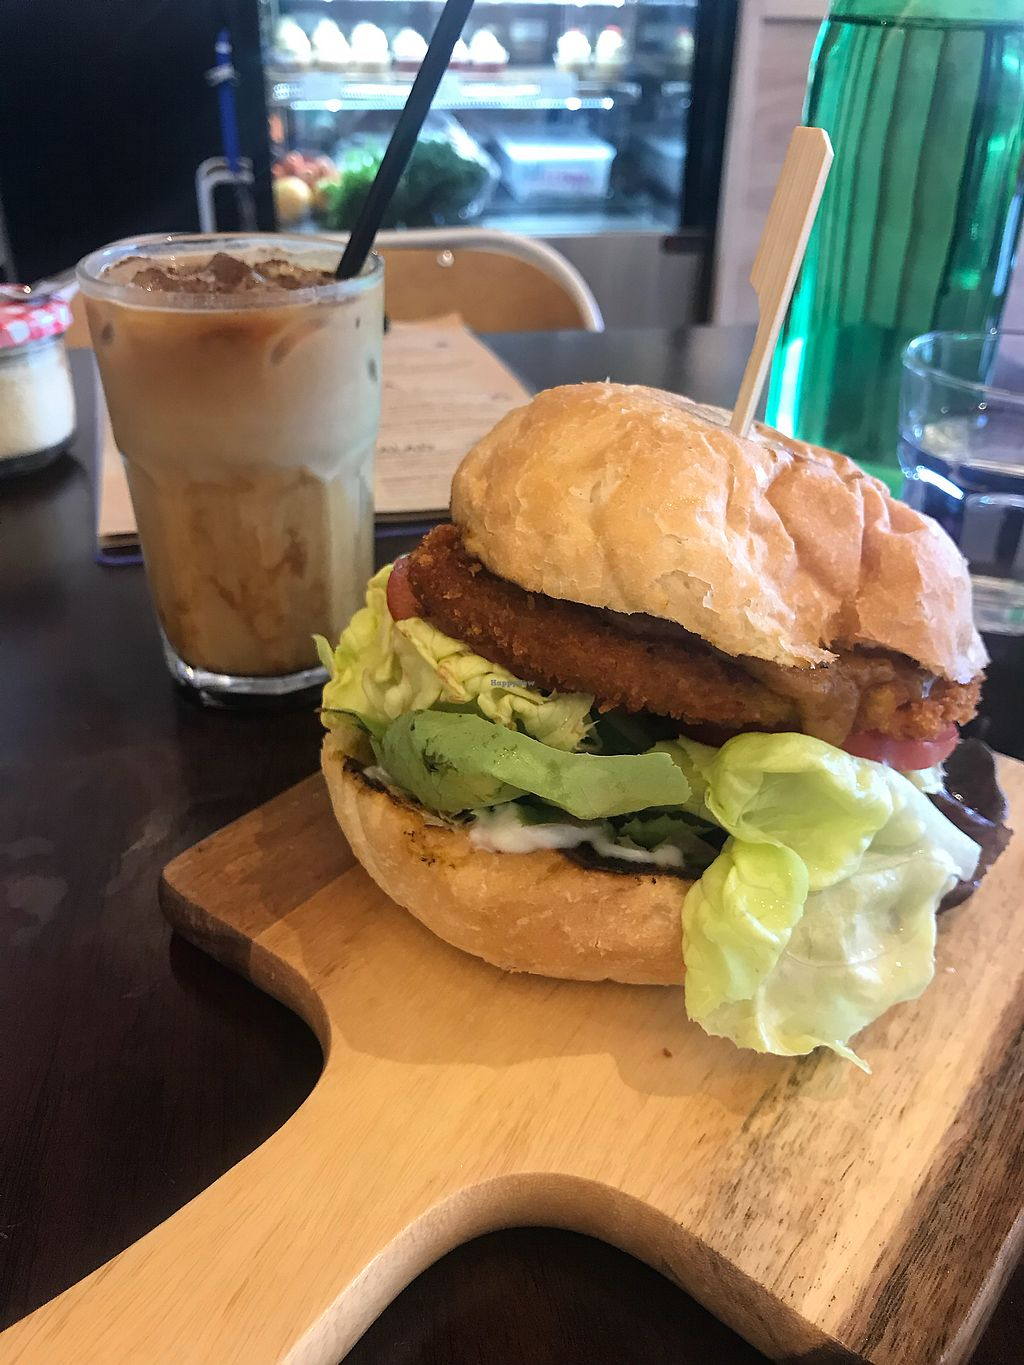 """Photo of Oh My Greens  by <a href=""""/members/profile/BrionyJenkinson"""">BrionyJenkinson</a> <br/>Seitan Burger- OMG good <br/> December 3, 2017  - <a href='/contact/abuse/image/100038/331919'>Report</a>"""